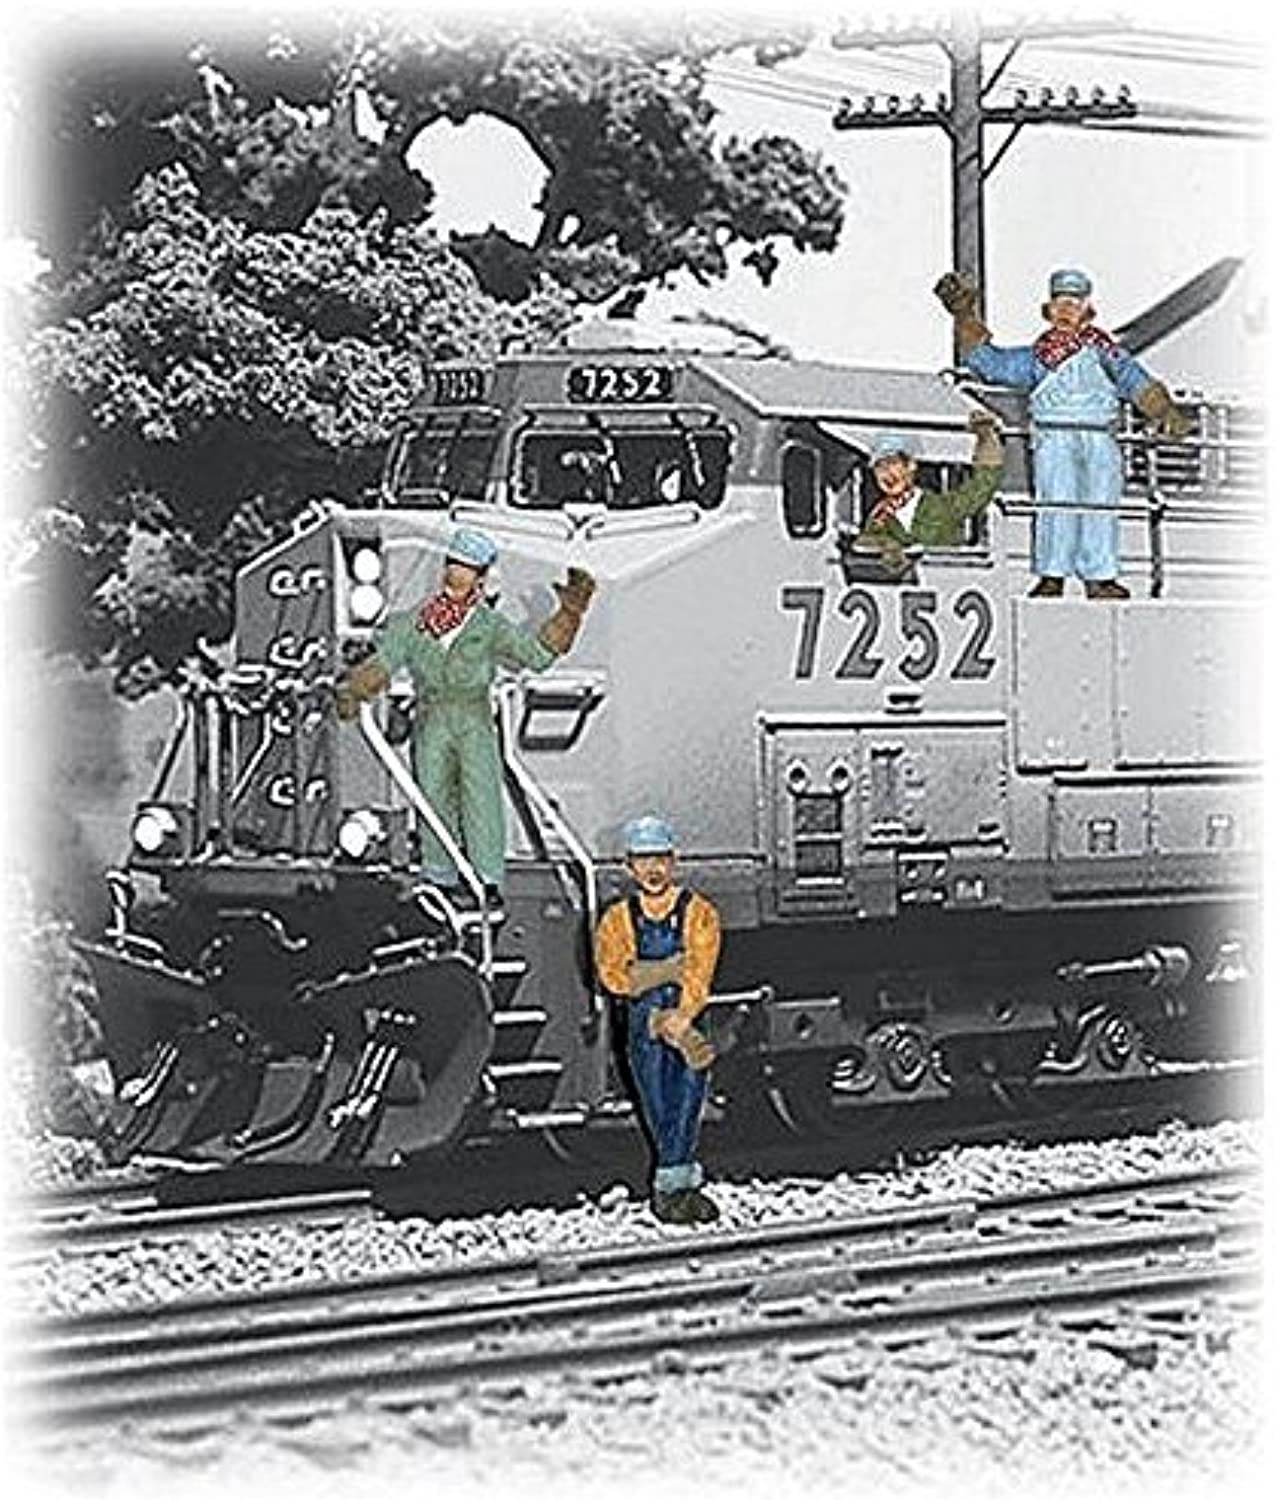 Woodland Scenics HO Scale Scenic Accents Figures People Set Engineers (6) by Woodland Scenics